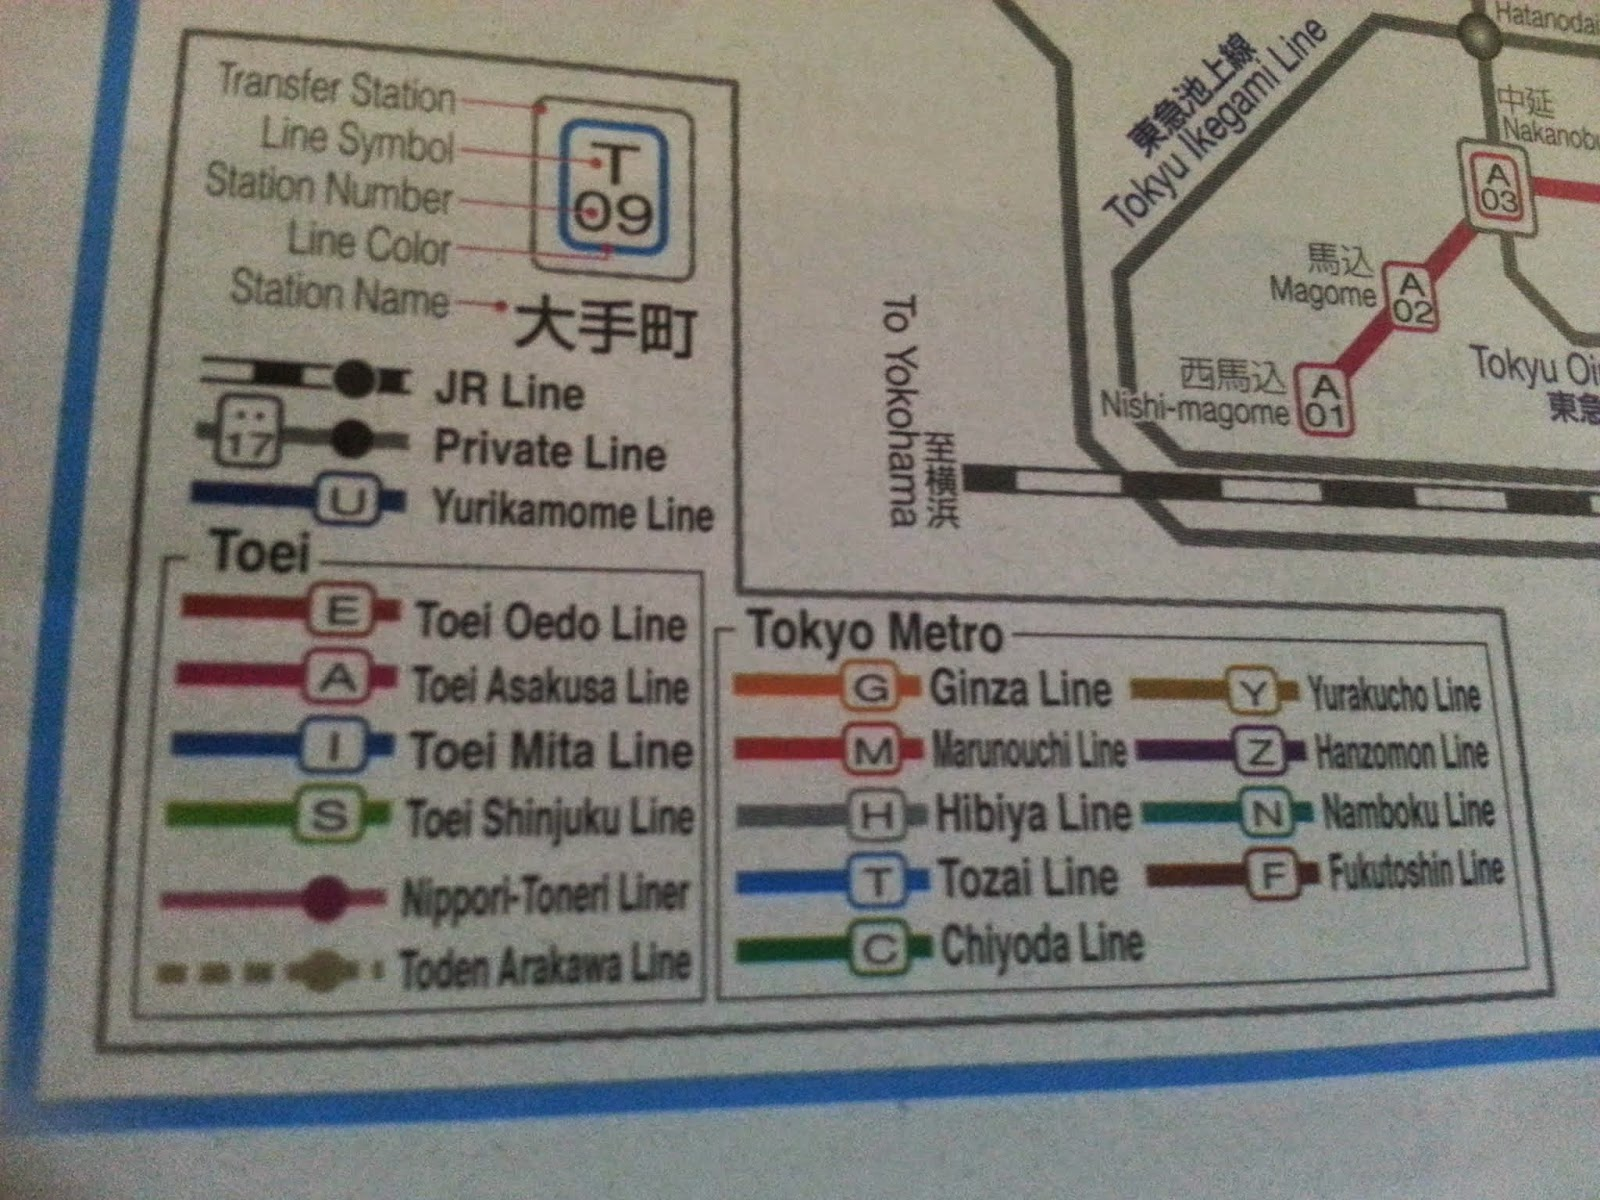 Five main subway train companies operating 18 lines in Tokyo, Japan